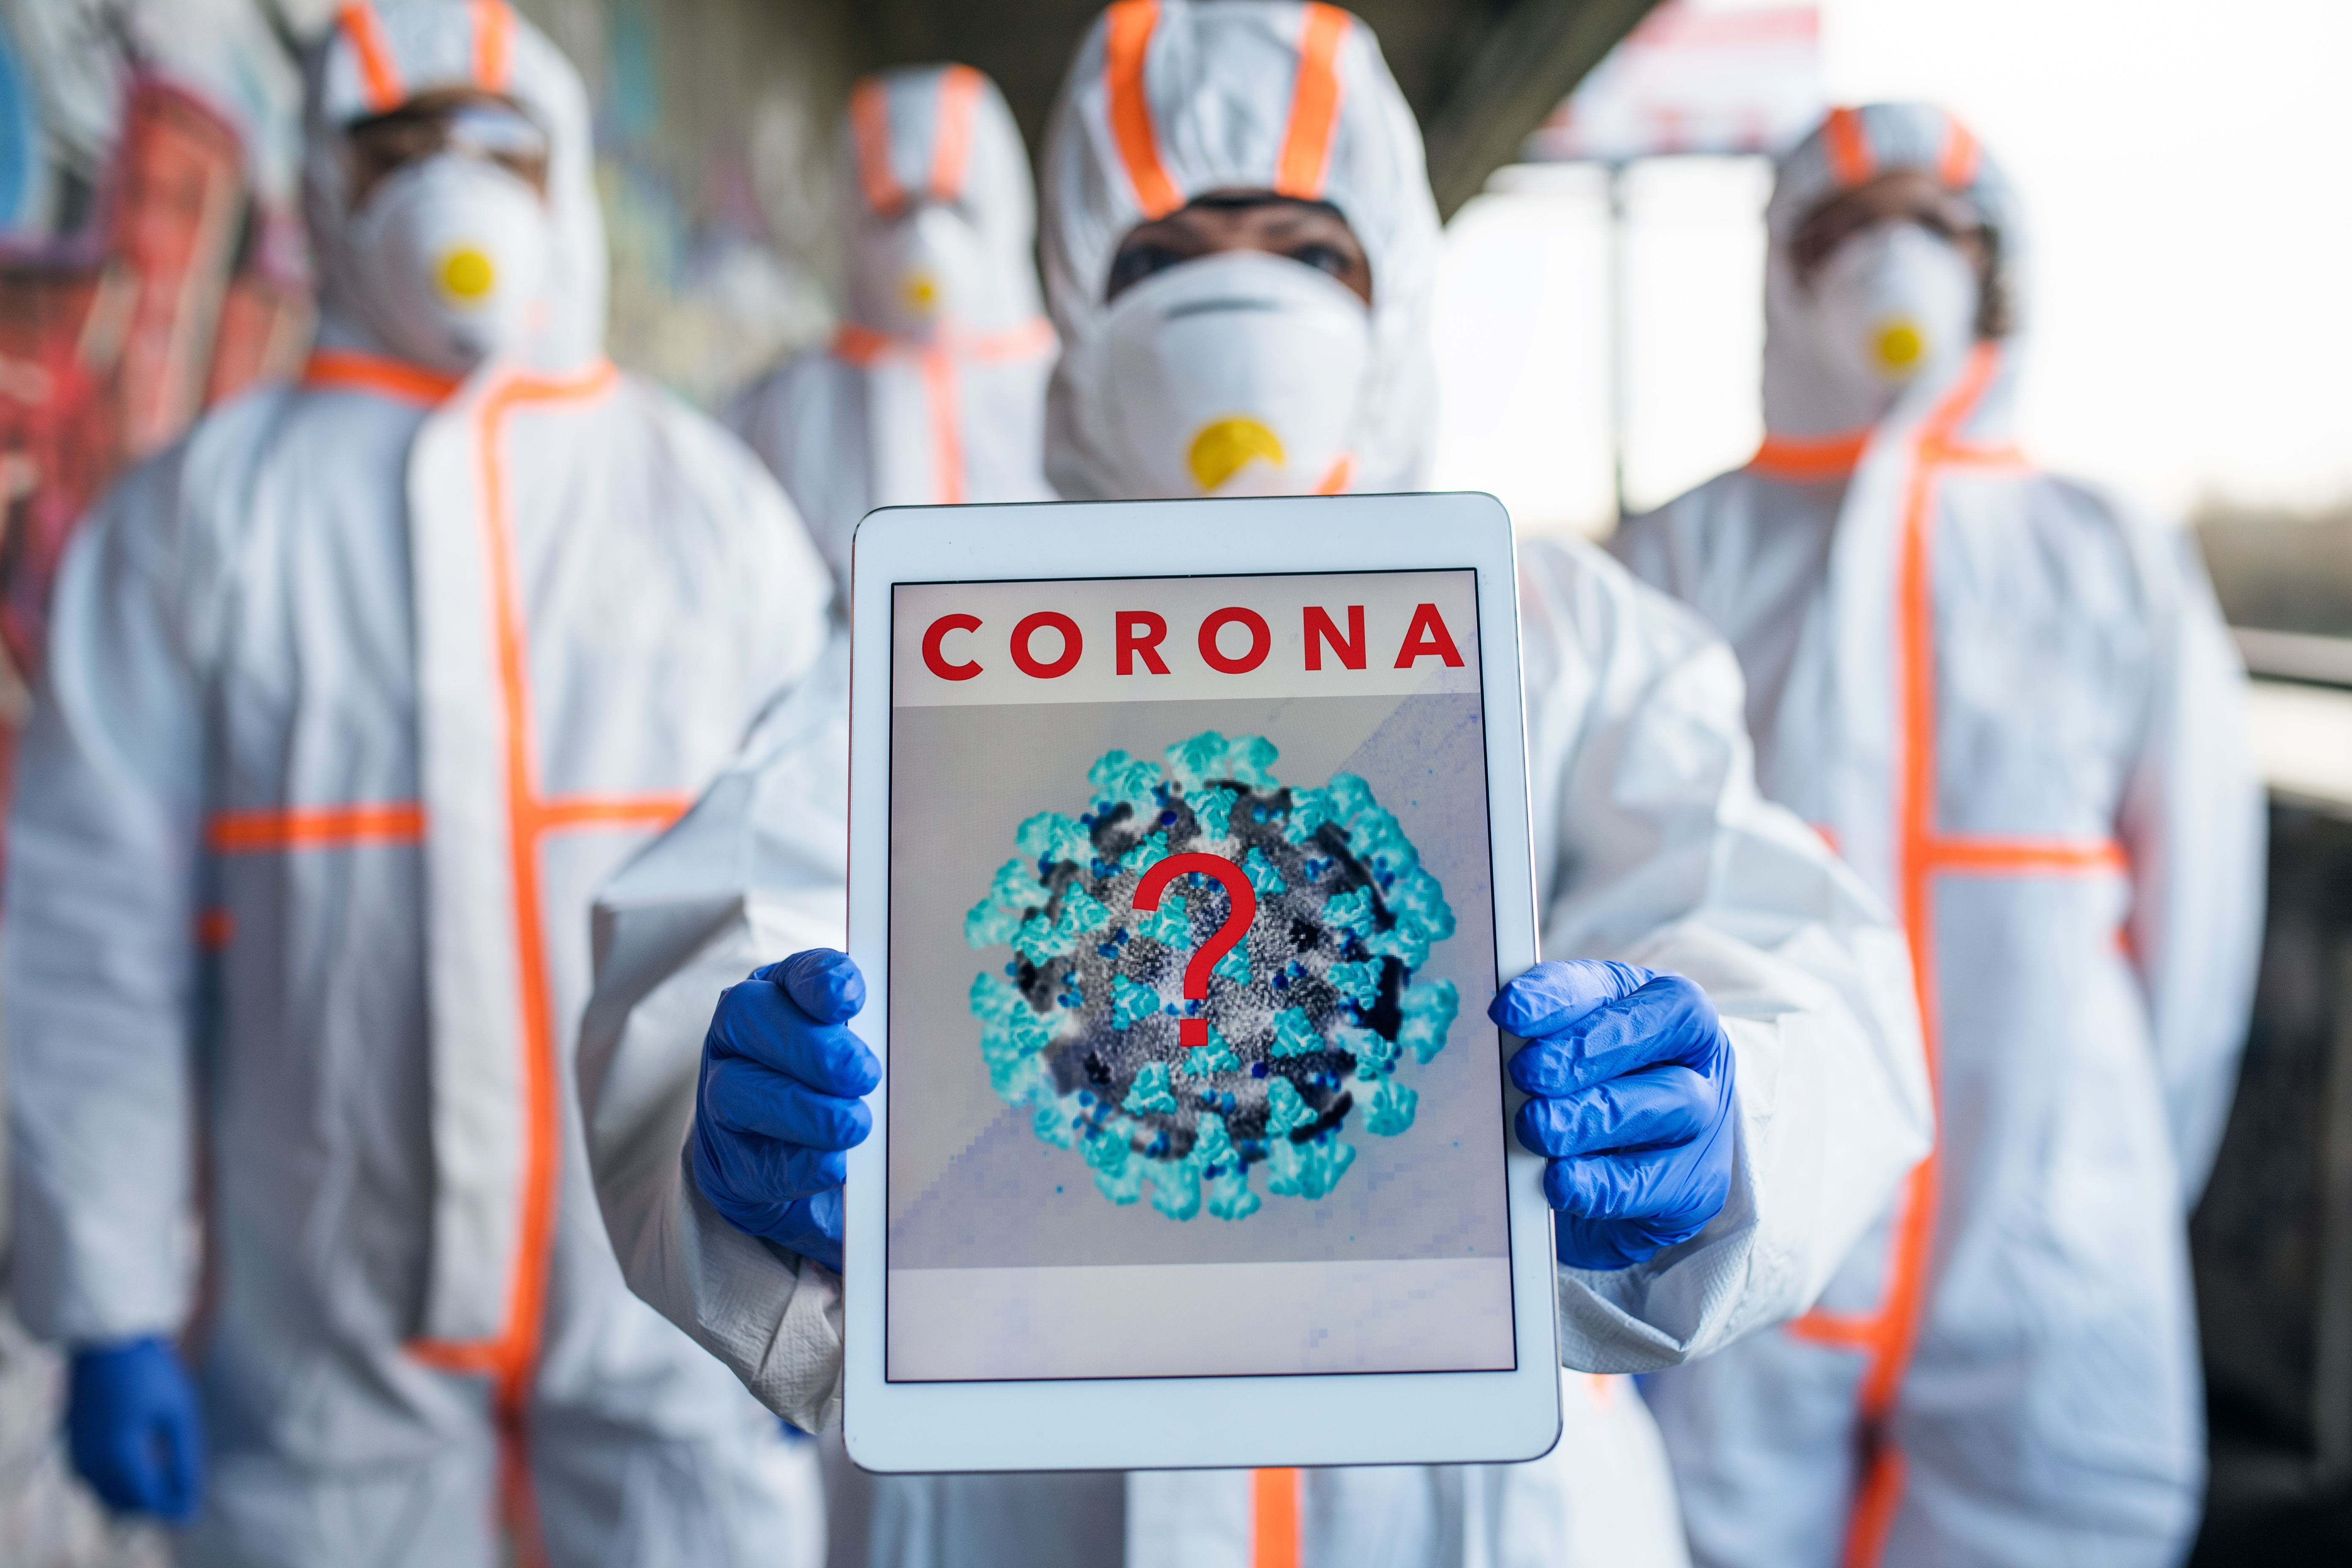 WHO Chief Says Coronavirus Pandemic Threat Is 'Very Real'